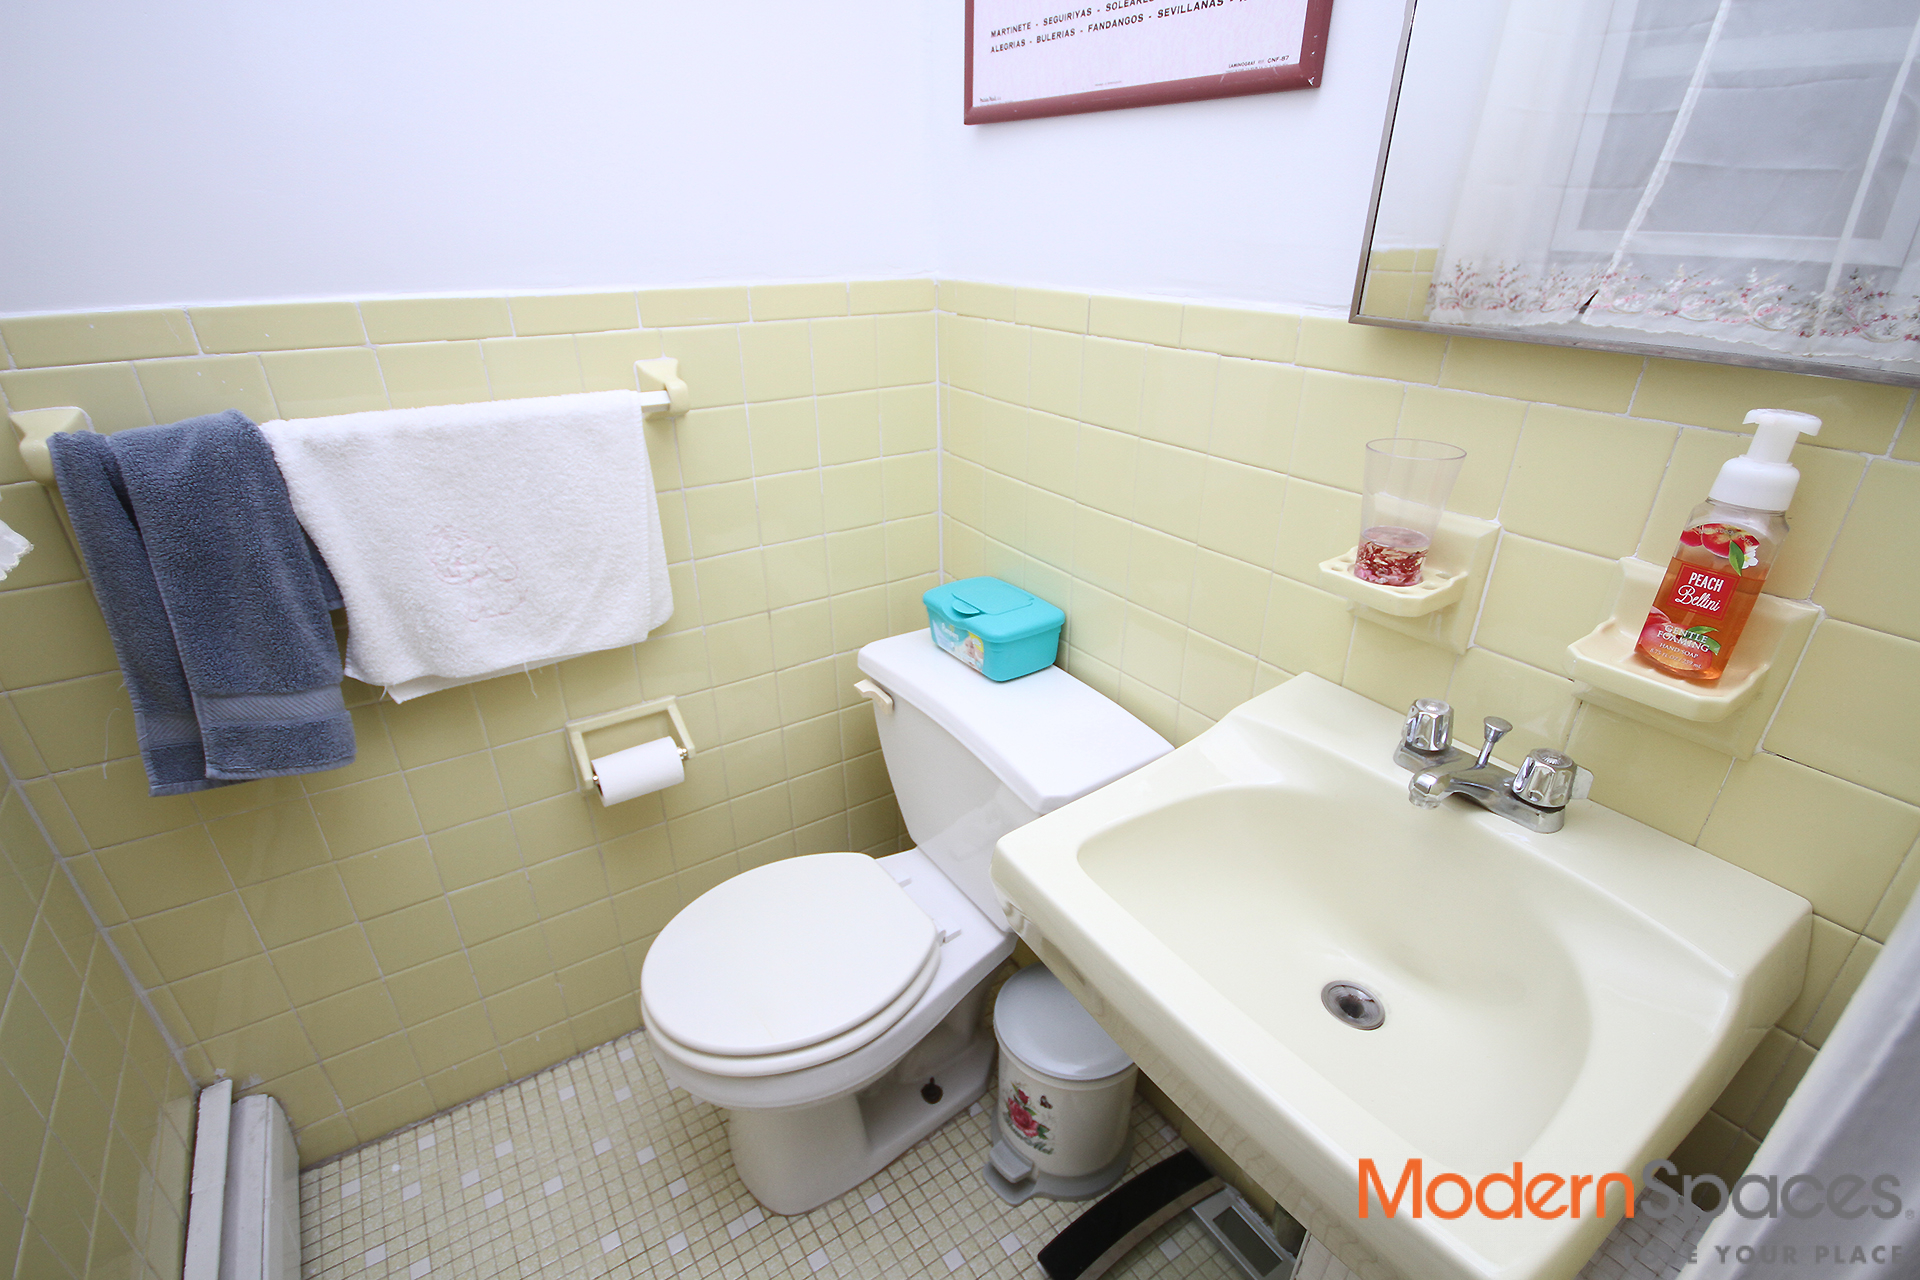 2253 76 Street 3rd Floor Is A 3 Bedroom Apartment For